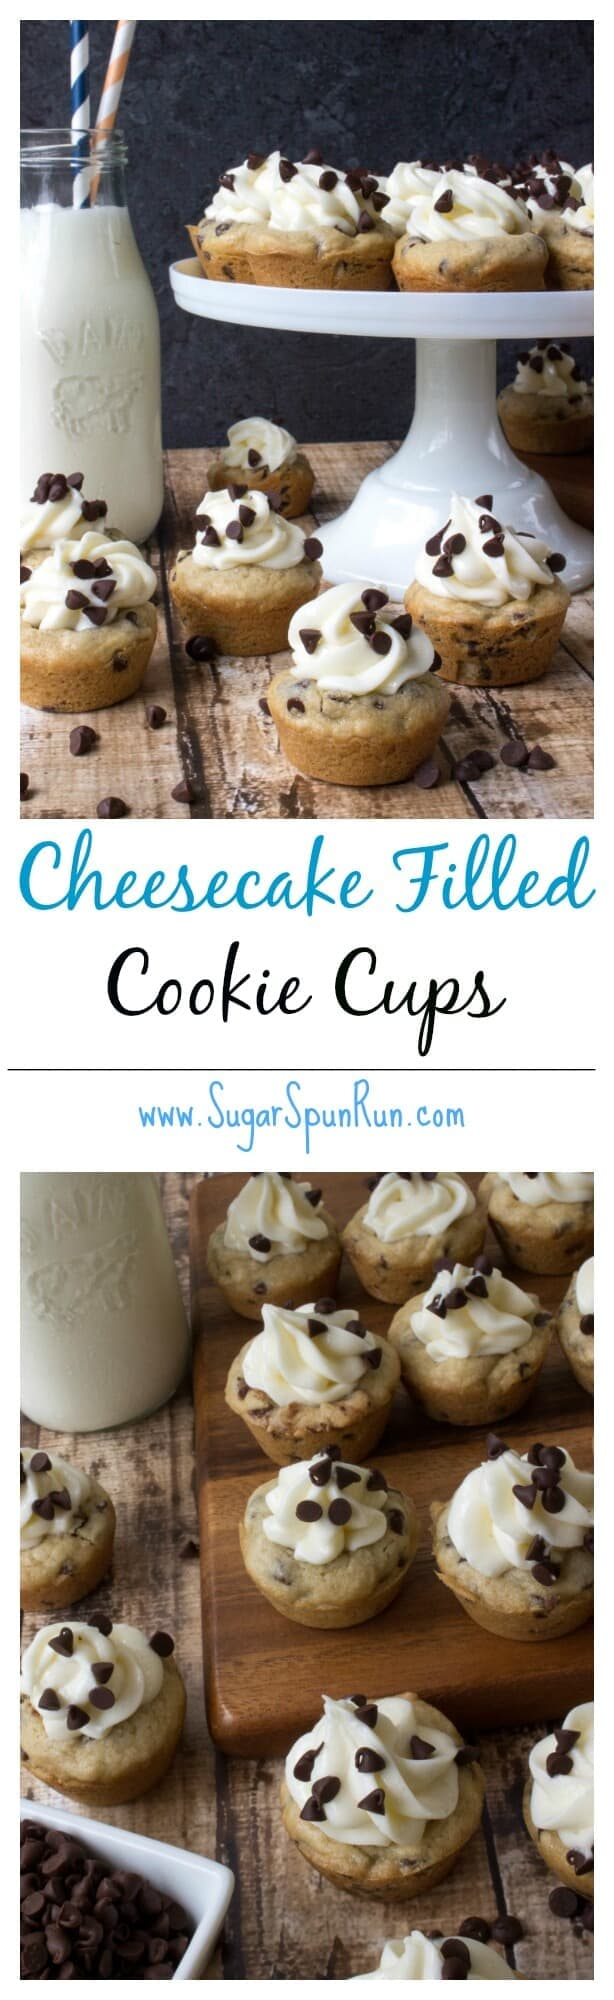 Cheesecake Filled Cookie Cups - Sugar Spun Run